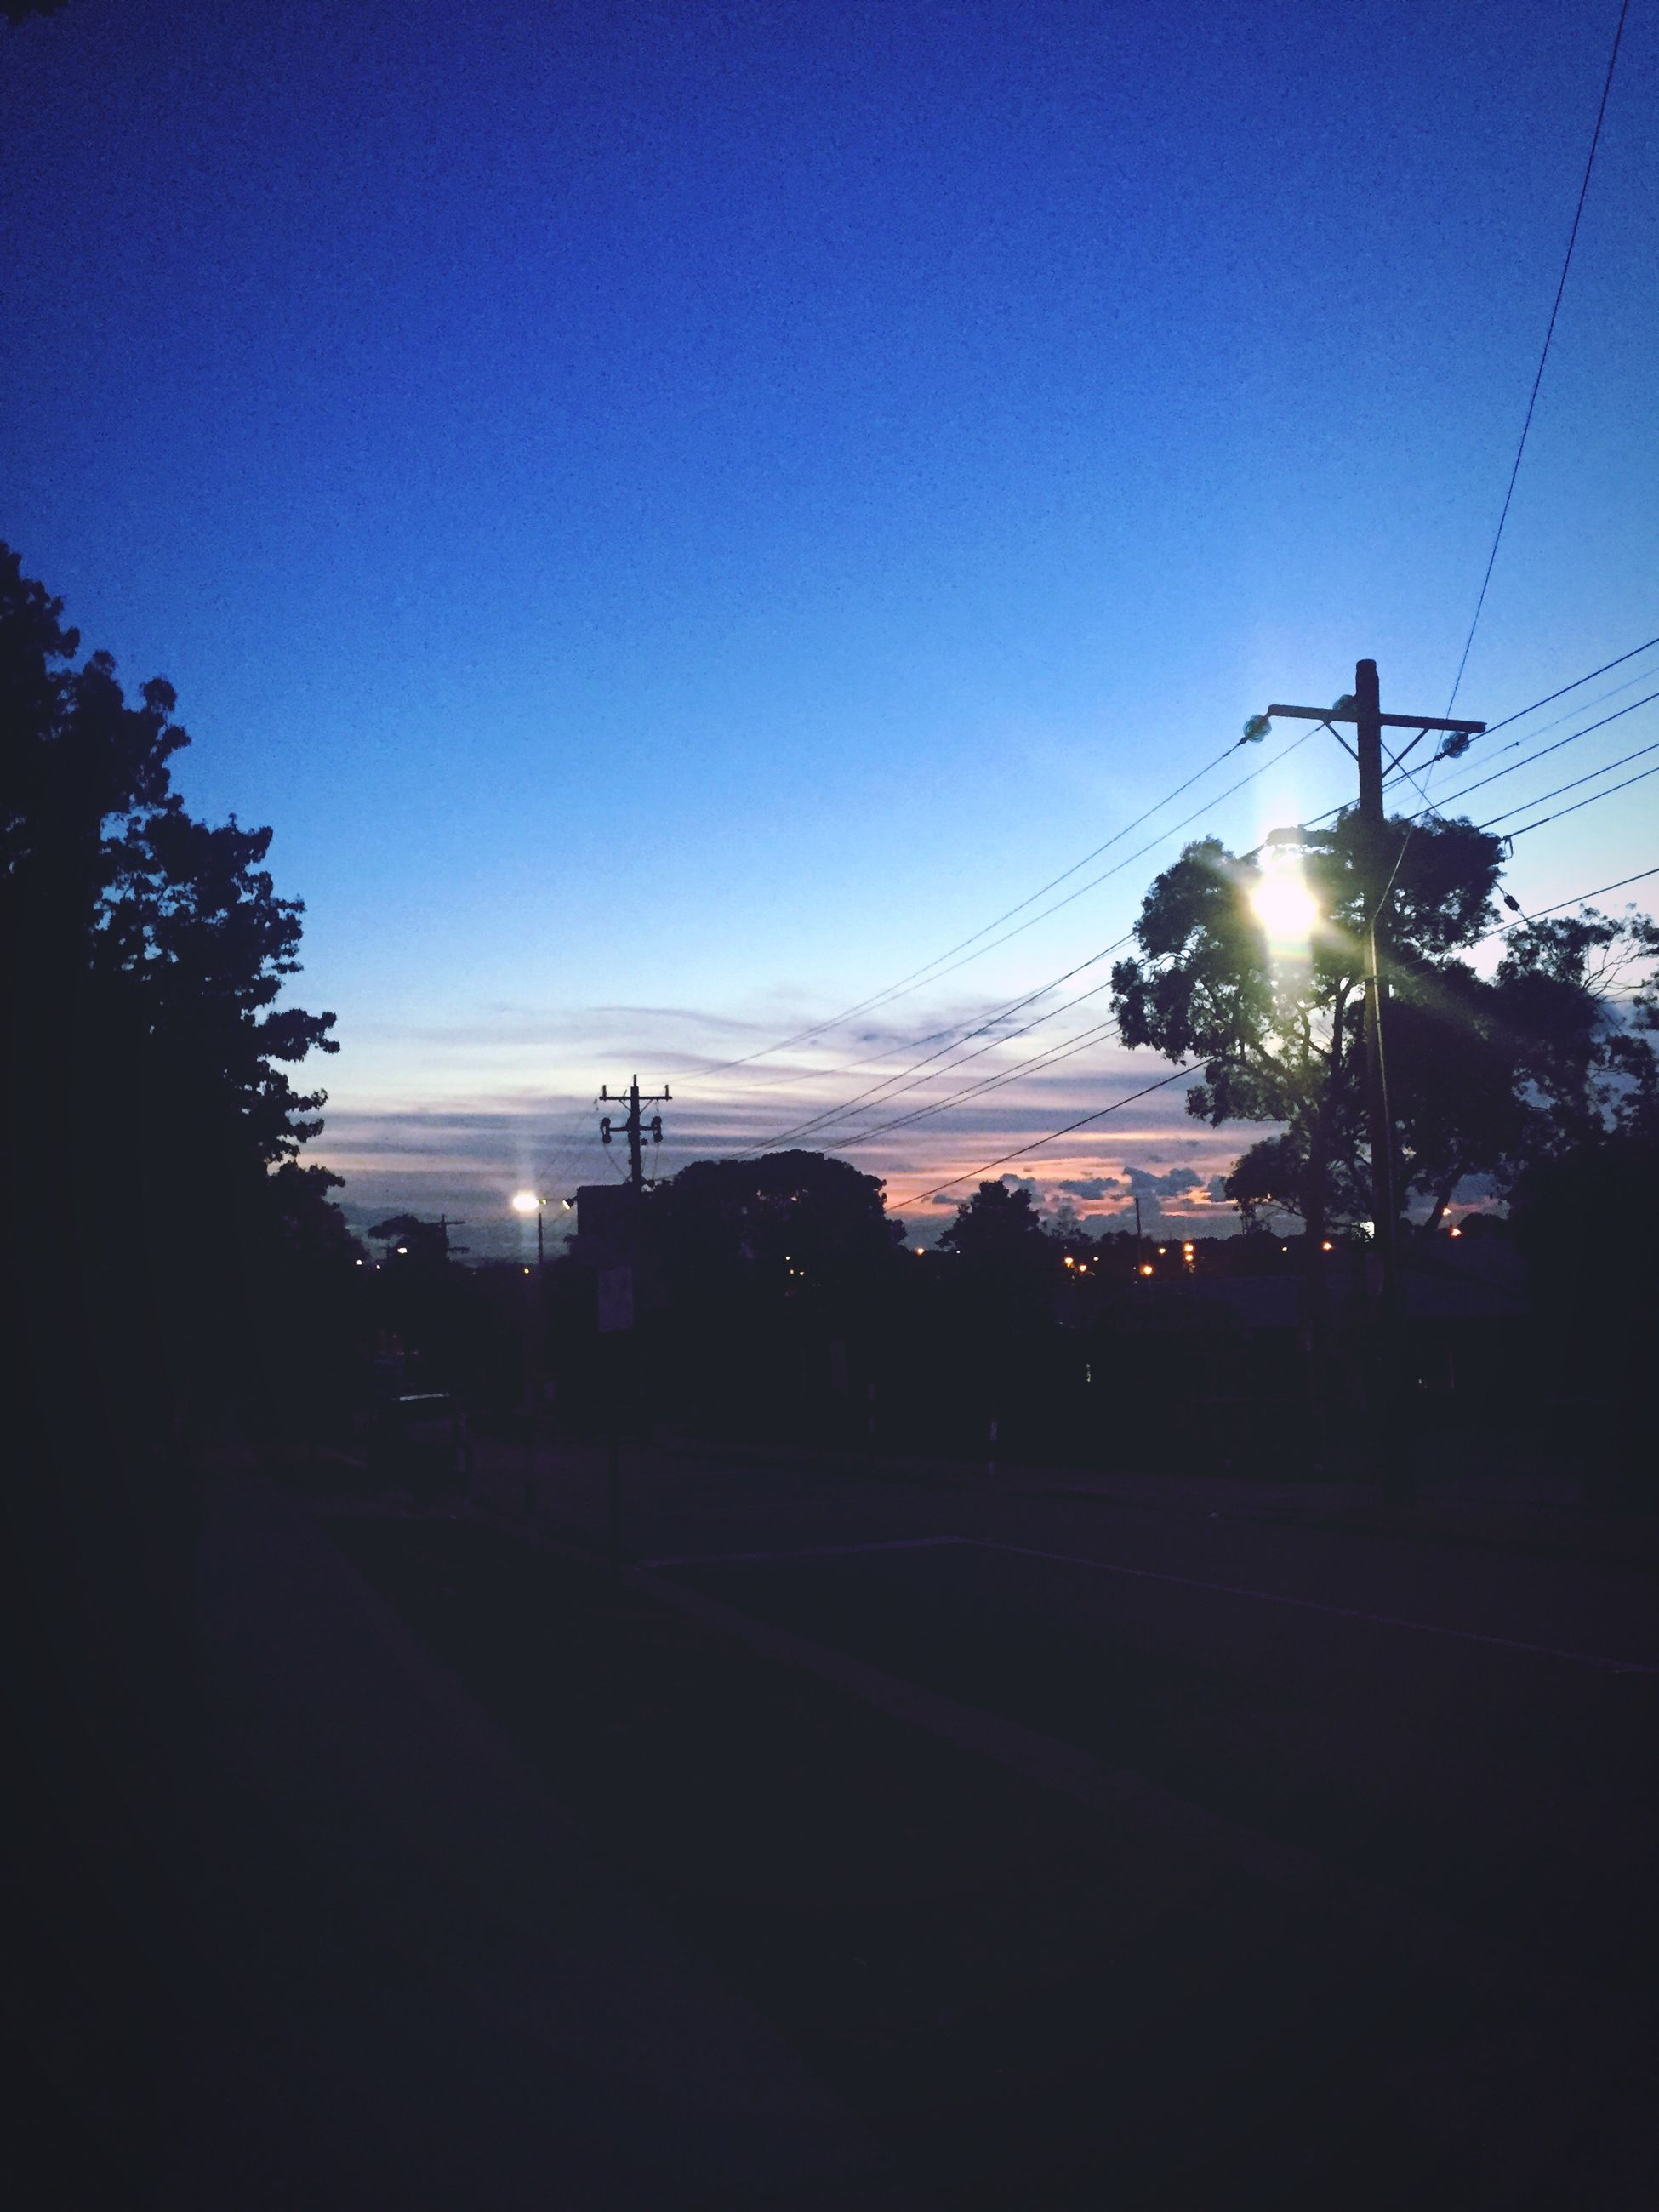 power line, silhouette, electricity pylon, clear sky, sunset, street light, tree, road, electricity, transportation, sky, sun, copy space, street, illuminated, blue, tranquility, power supply, dusk, nature